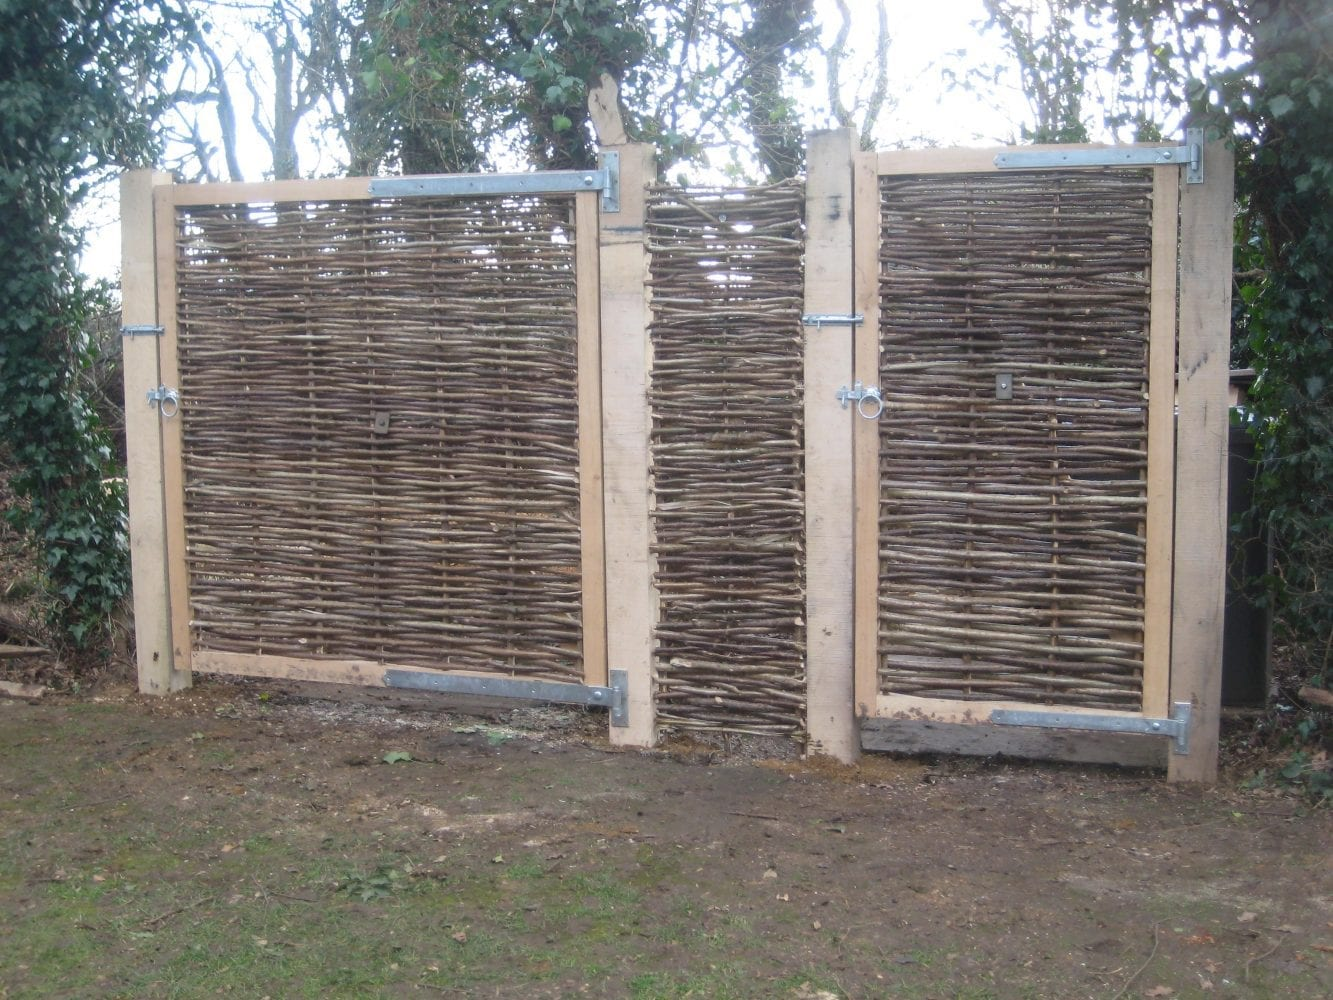 <span>Ref: F35</span><br>Large oak framed hazel infill gates to screen wheely bins and compost, Banbury, Oxfordshire; left gate 6' x 6' wide £800 and right gate 6' x 3' wide £480 inc VAT.